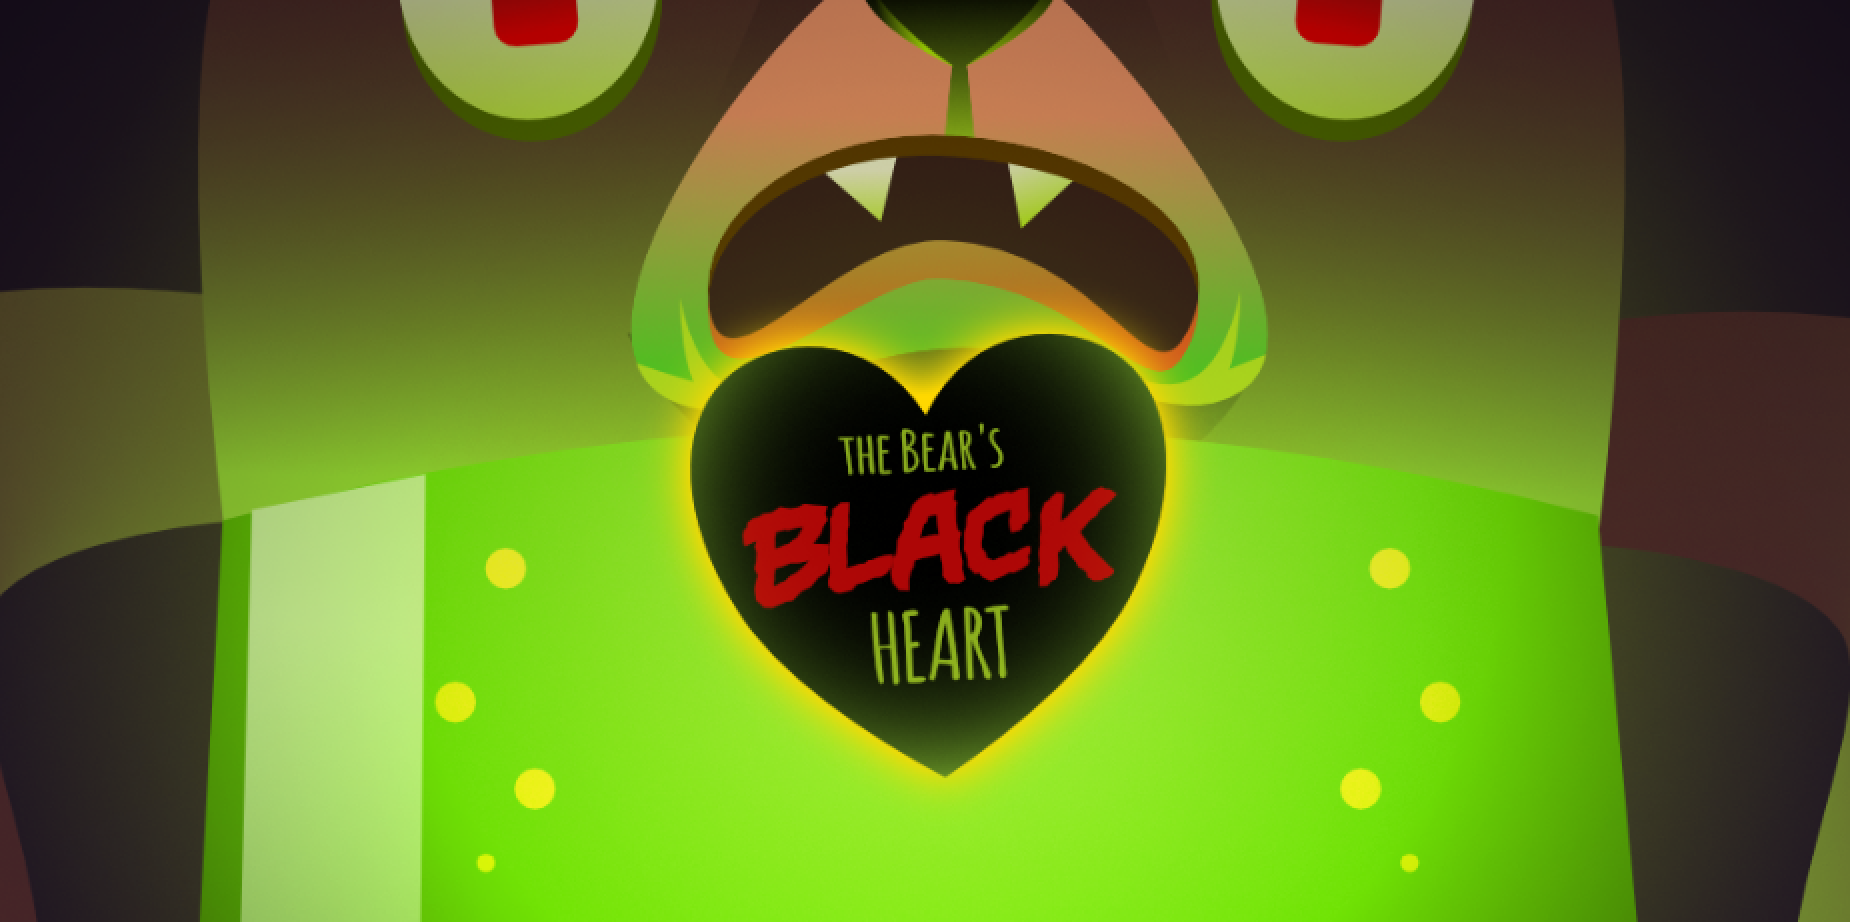 The Bear's Black Heart